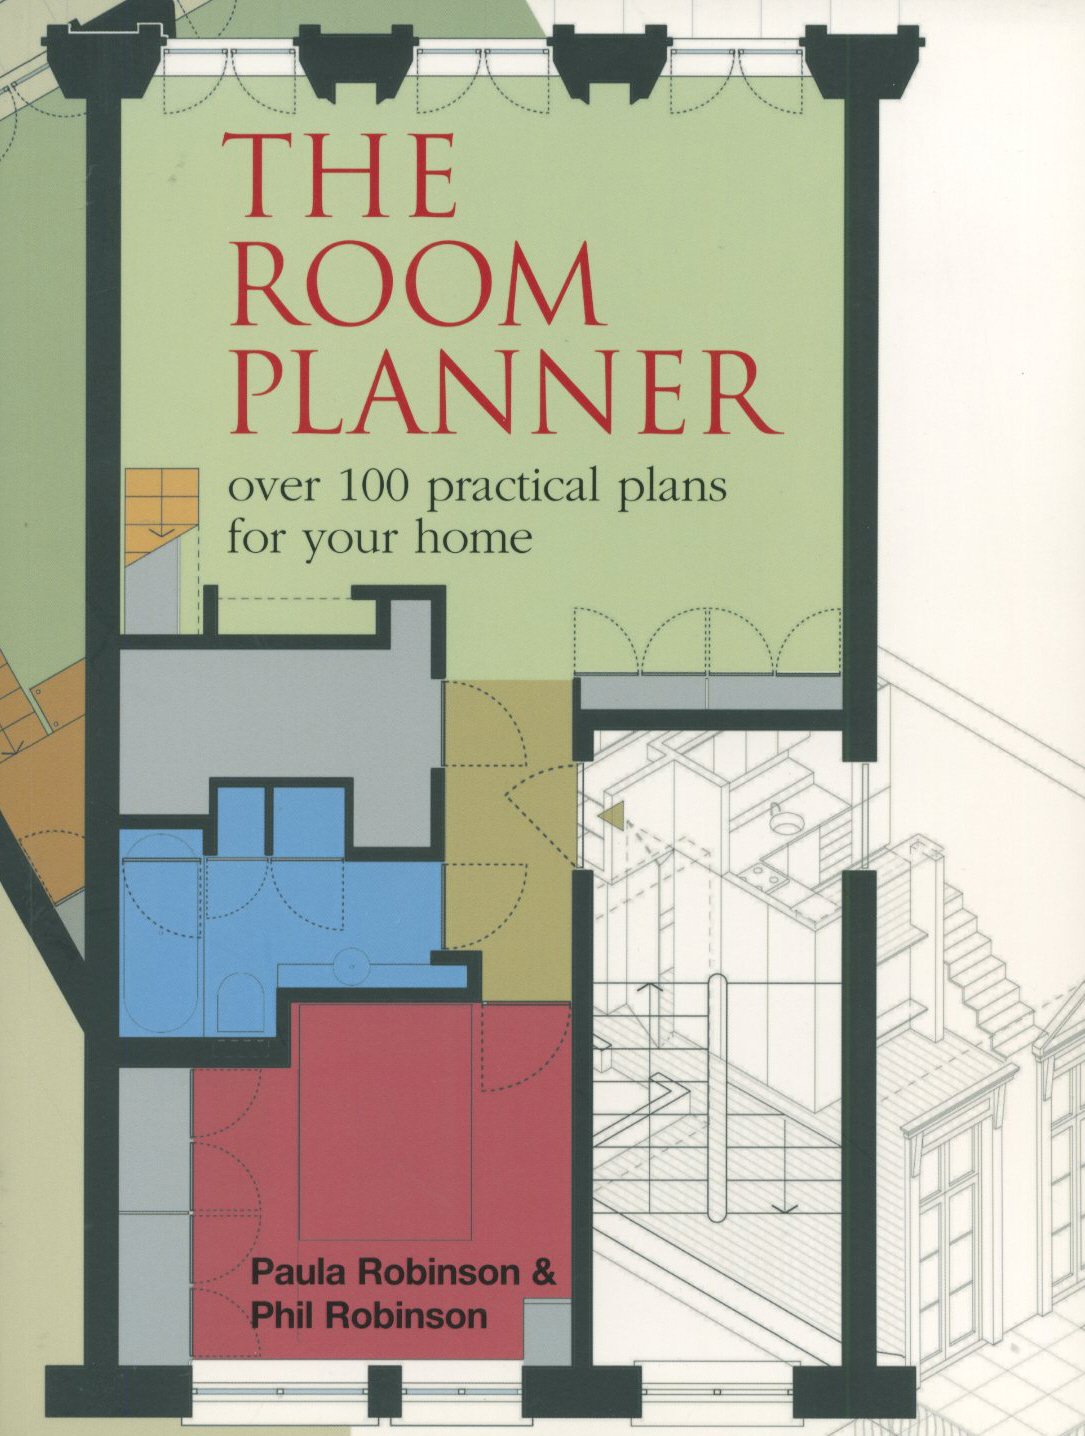 The Room Planner 250 practical plans for your home